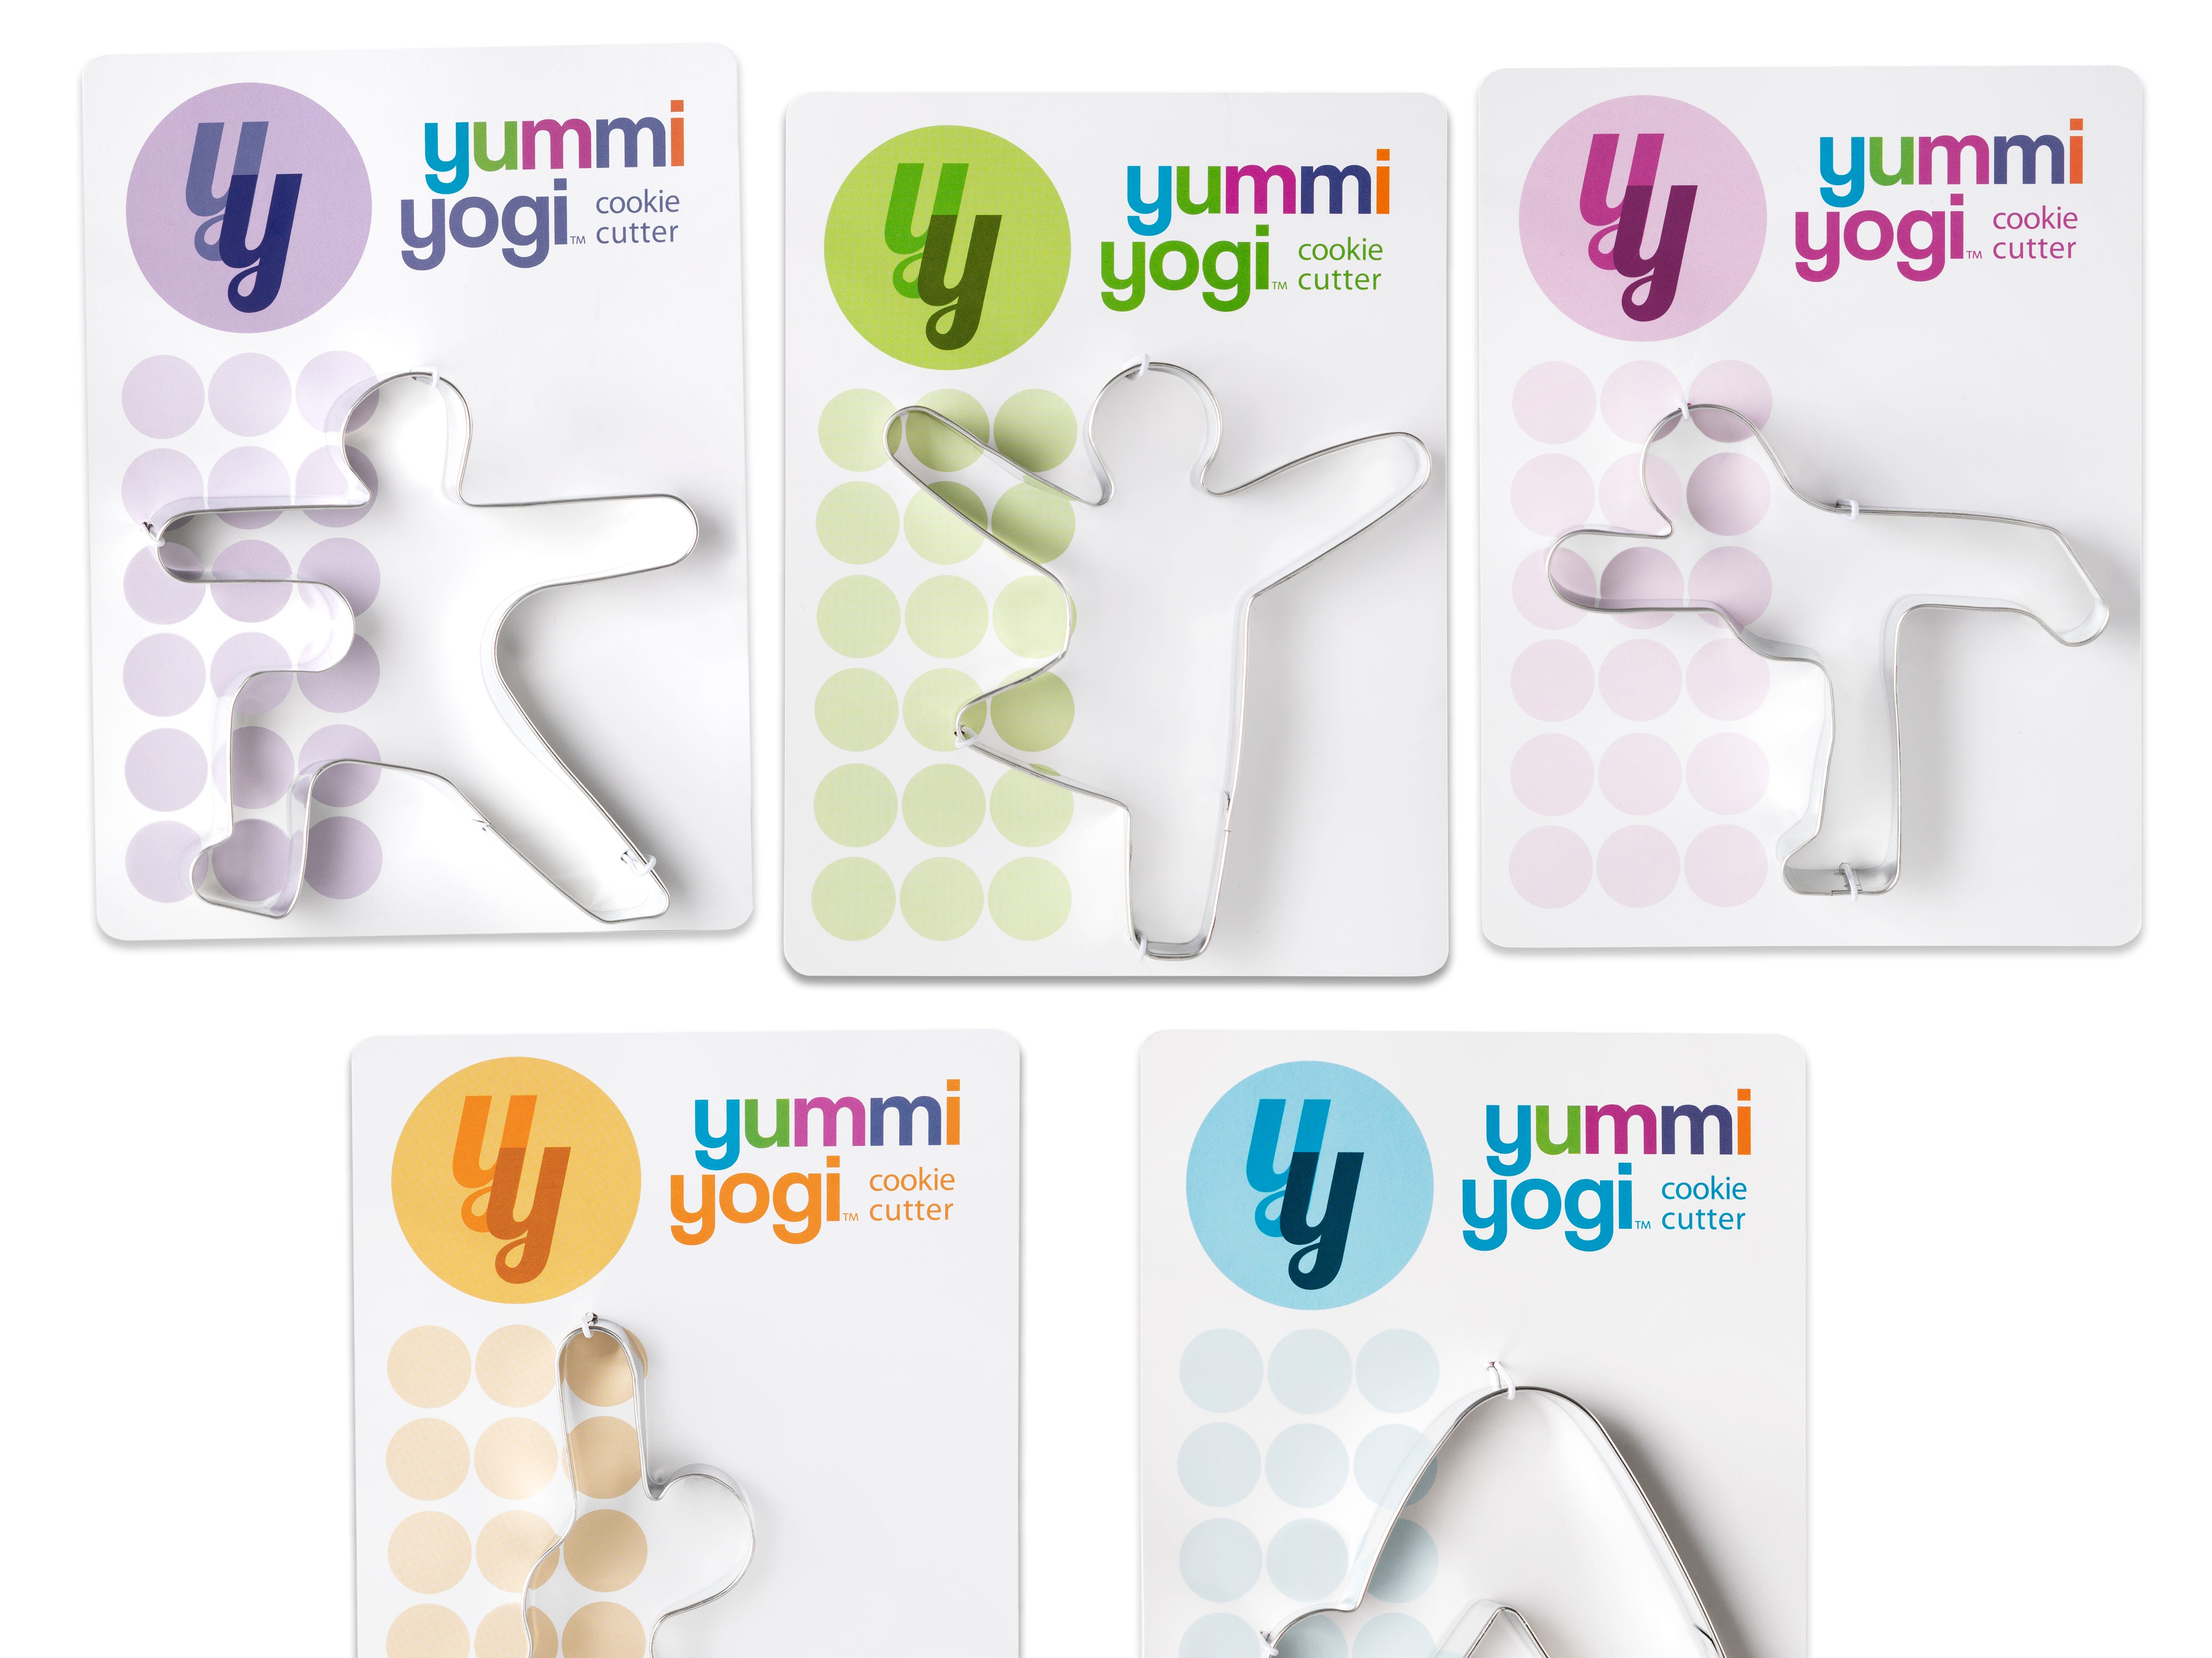 A collection of yoga-inspired cookie cutters from Yummi Yogi.